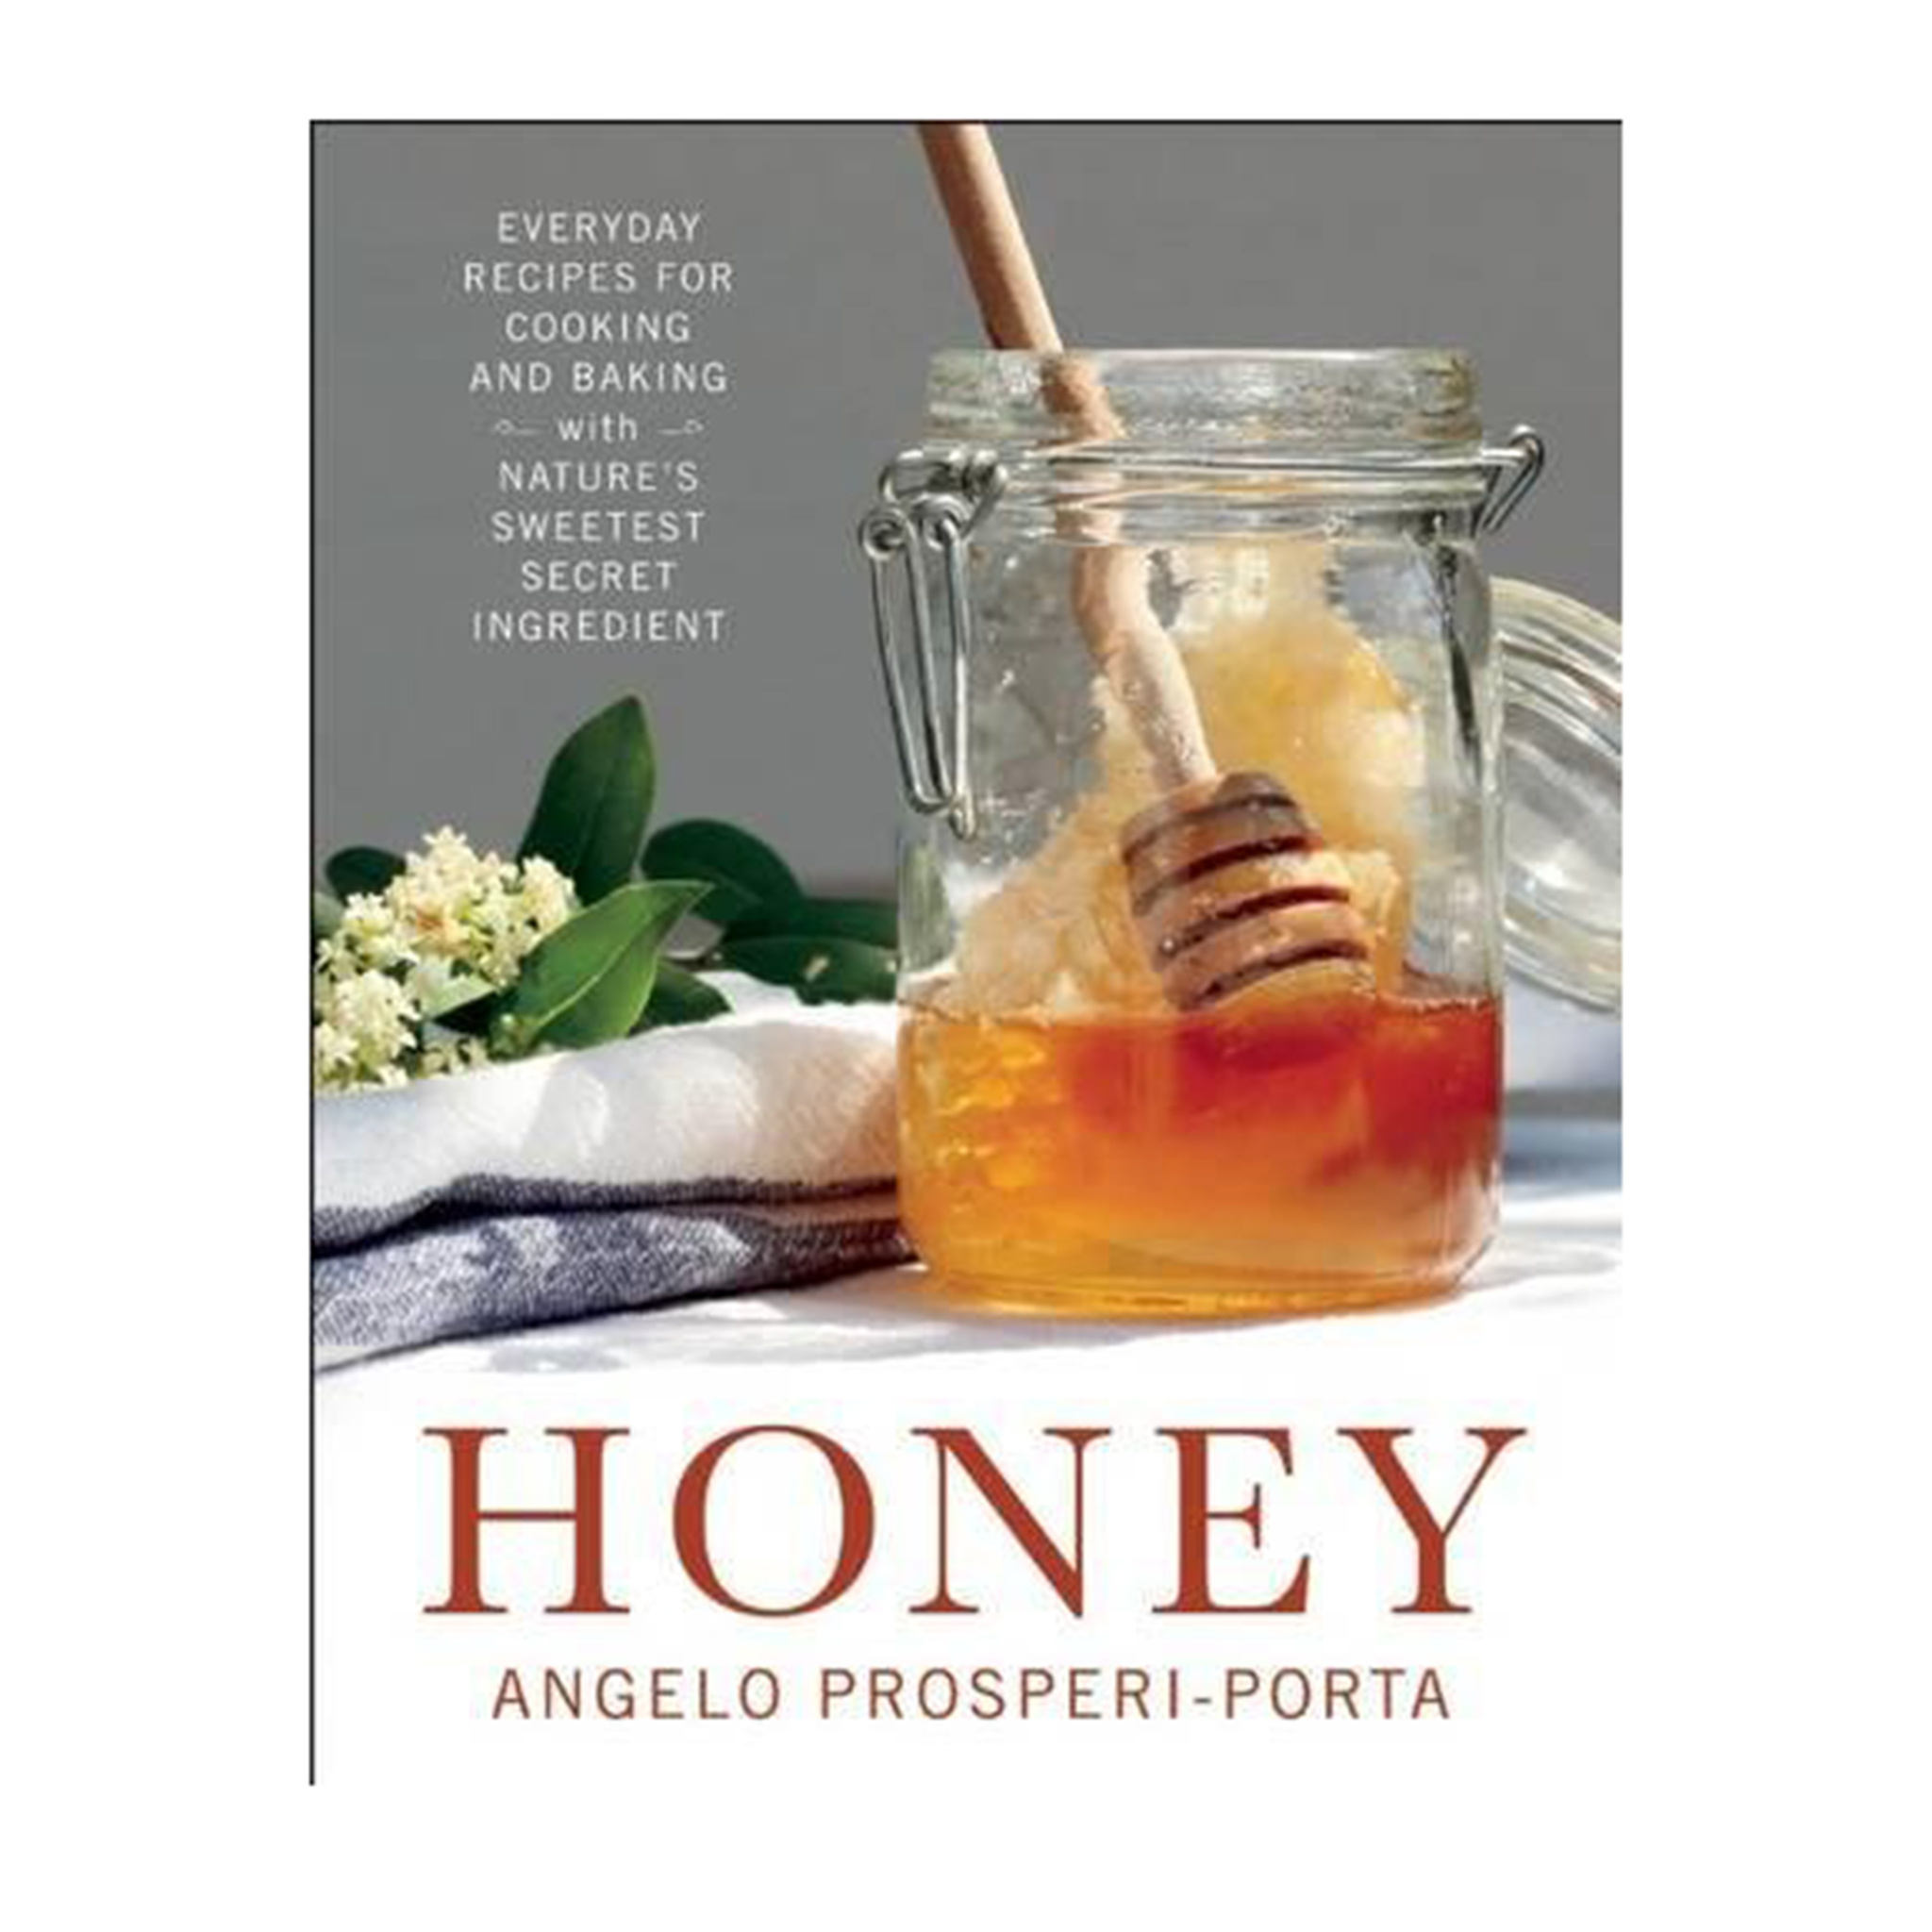 Honey: Everyday Recipes for Cooking and Baking with Nature's Sweetest Secret Ingredient